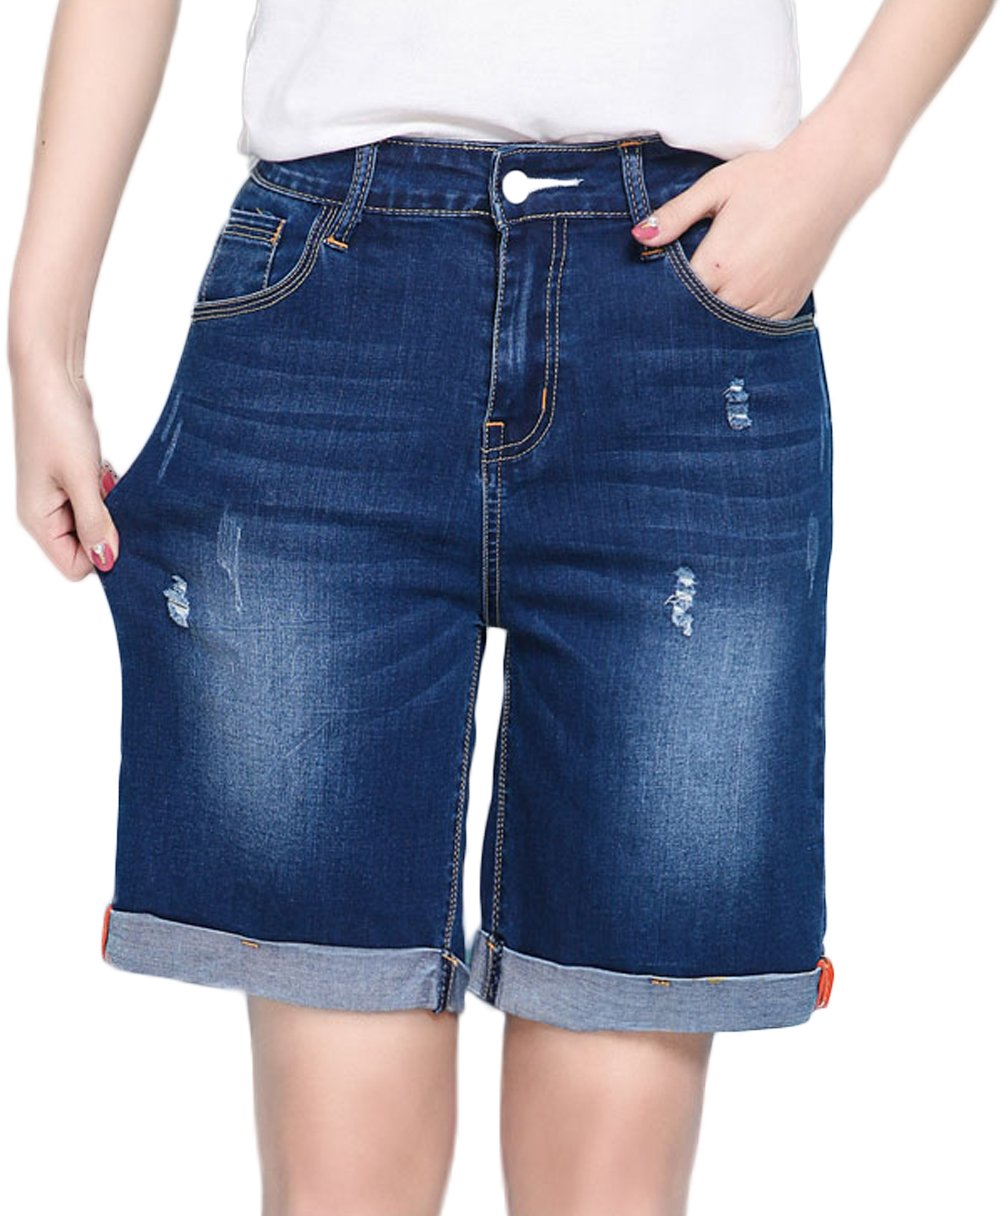 Innifer Women's Large Plus Size Knee-Length Stretch Denim Bermuda Shorts Jeans